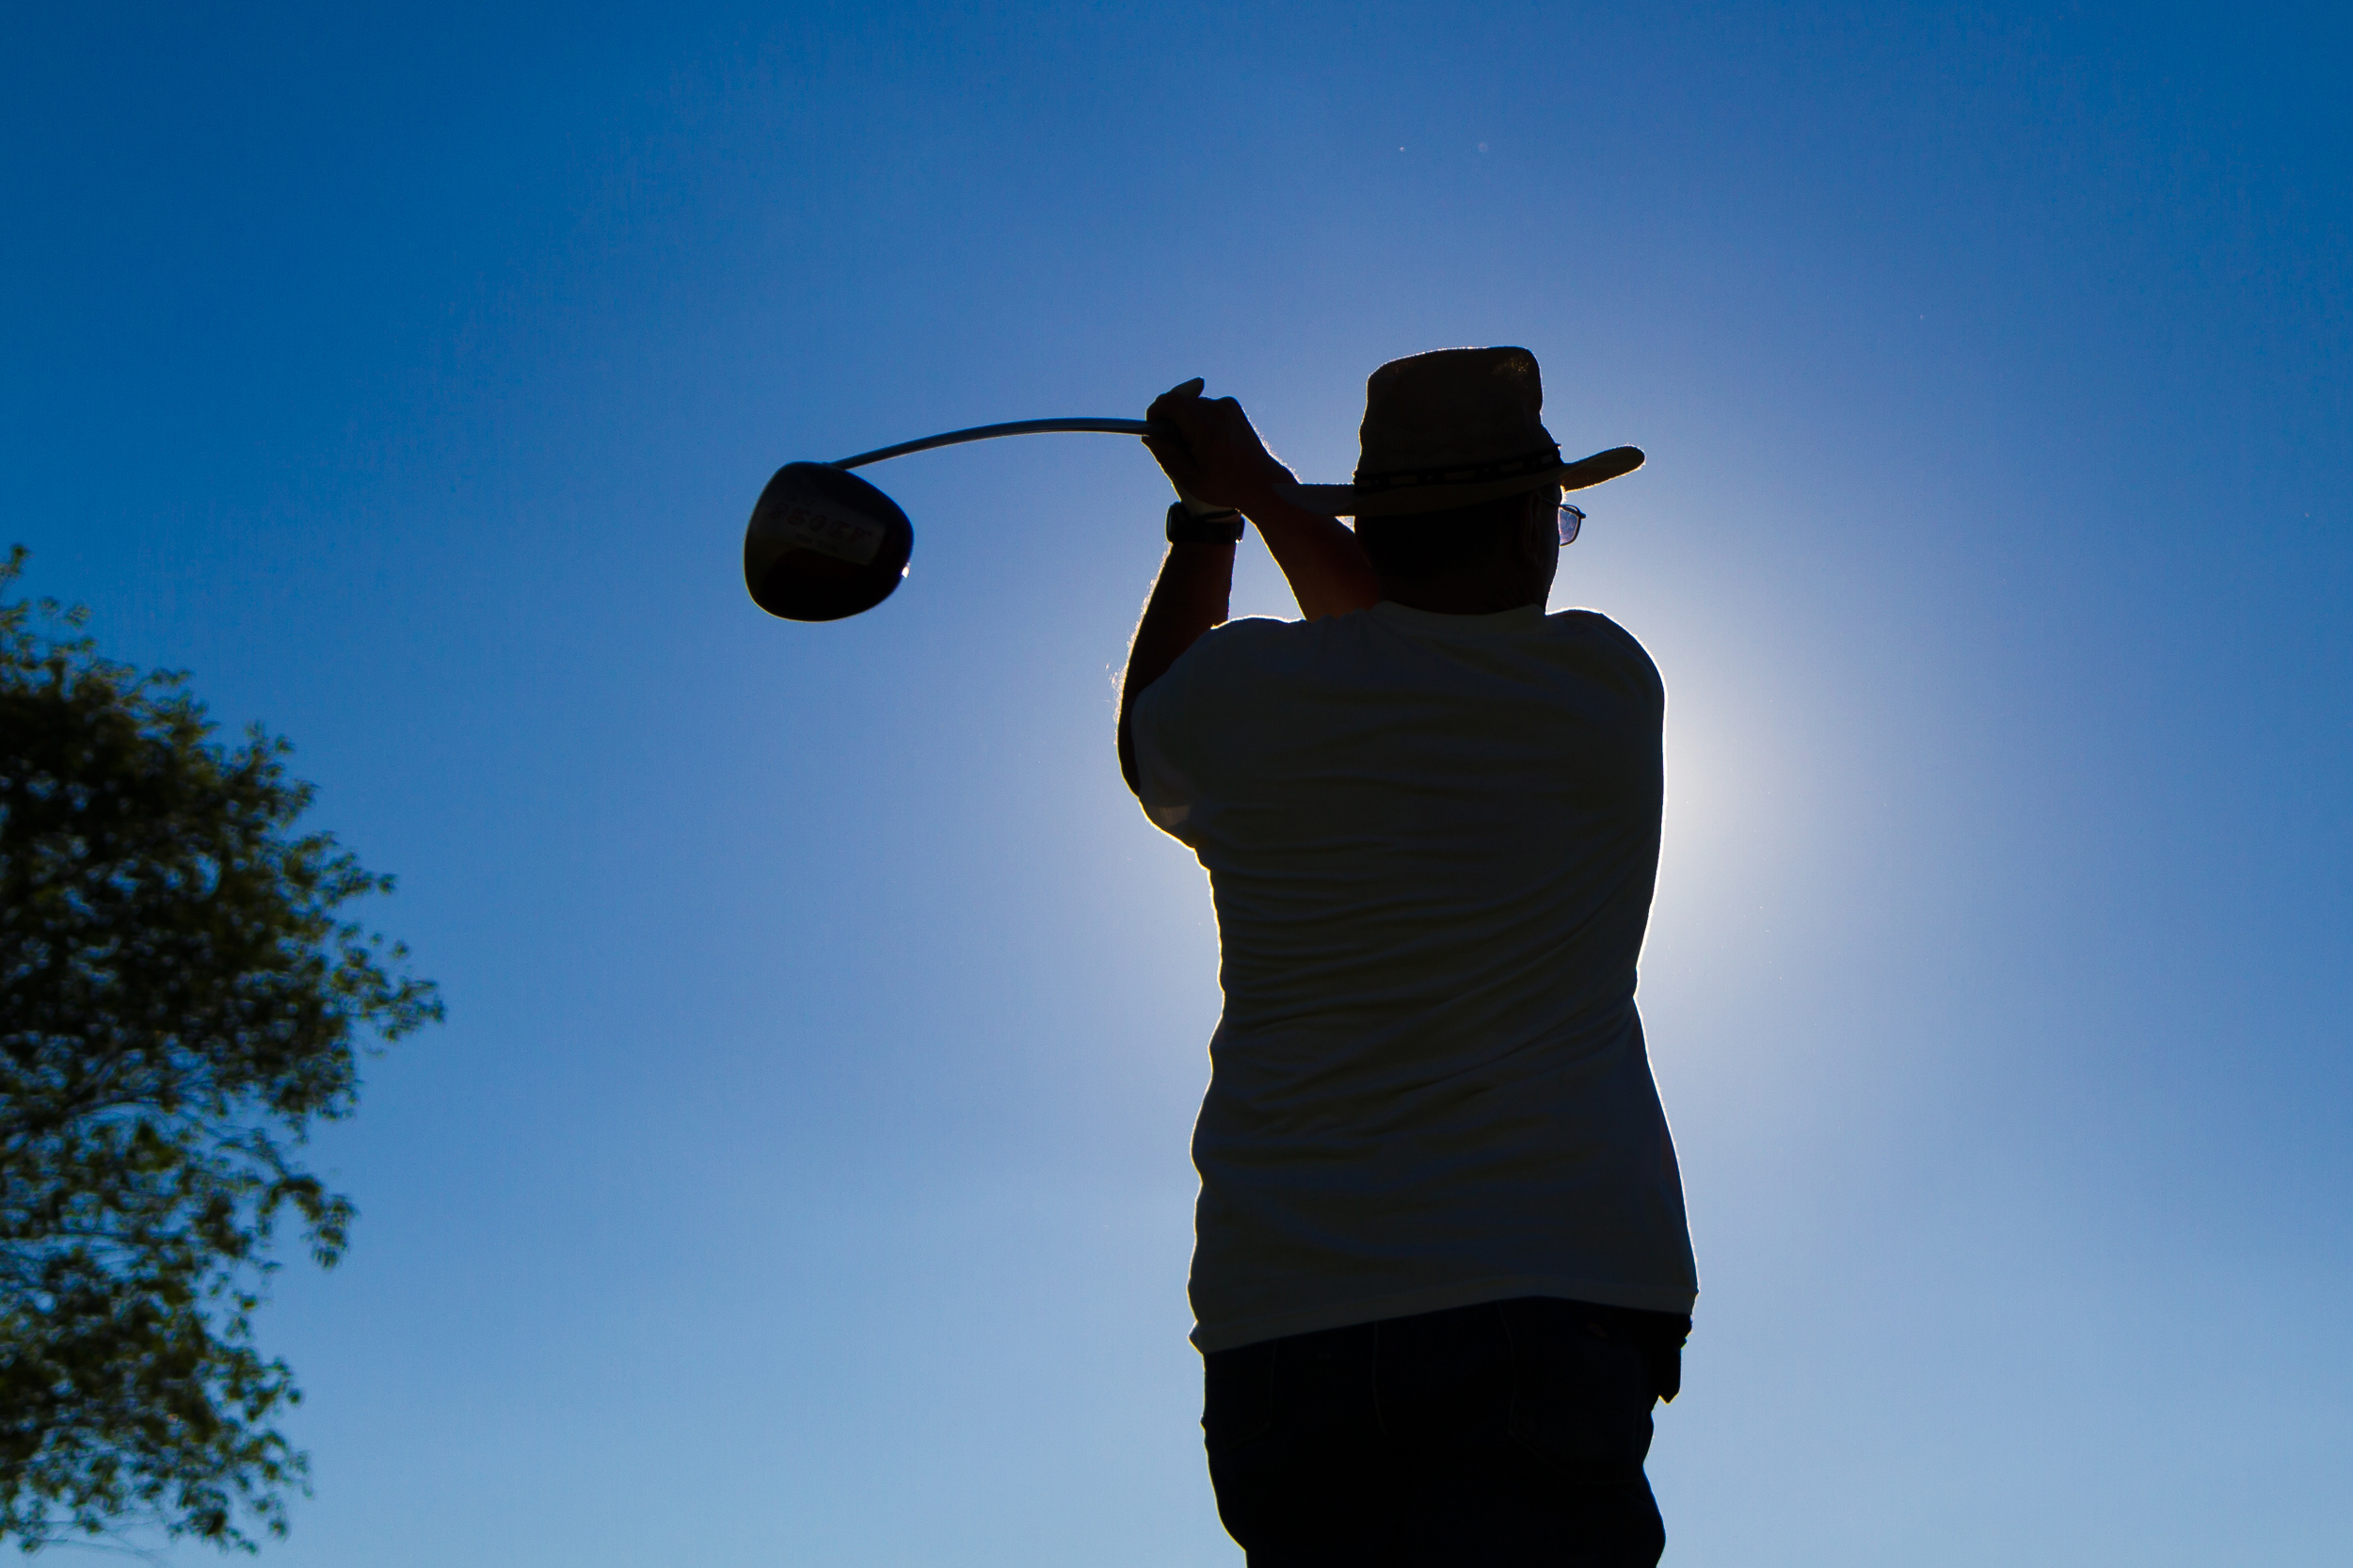 John Voirin, member of PPD and the Wednesday Night Fermilab Golf League at Fox Valley Golf Club in North Aurora, gets ready to swing at the 14th tee. Photo: Elliott McCrory, AD